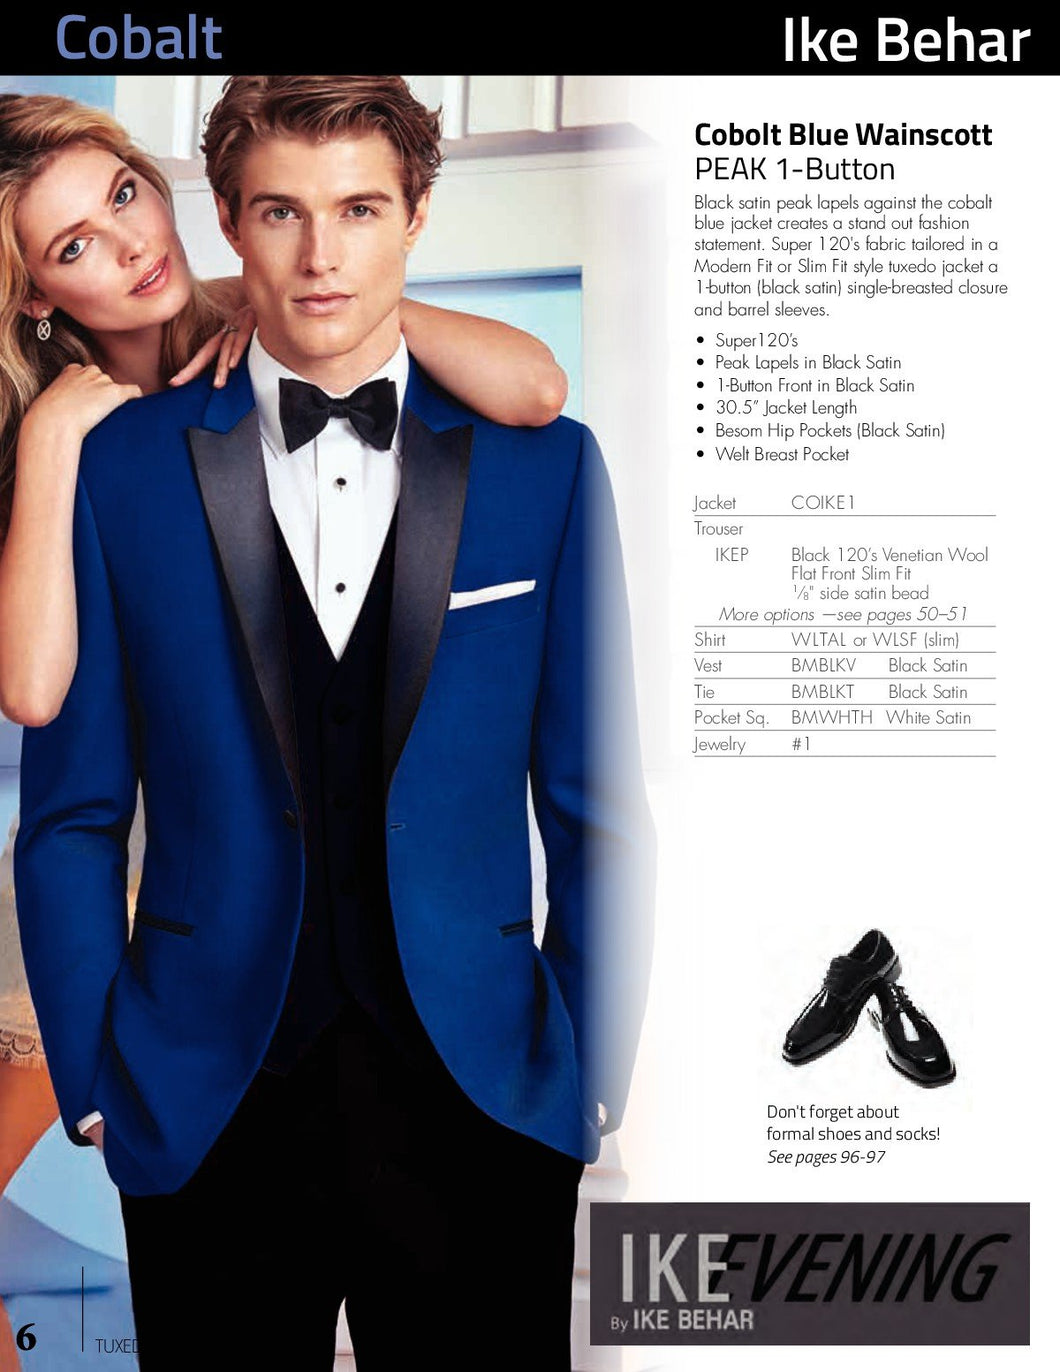 'Wainscott' Royal Blue 1-Button Peak Tuxedo - Tuxedo Club